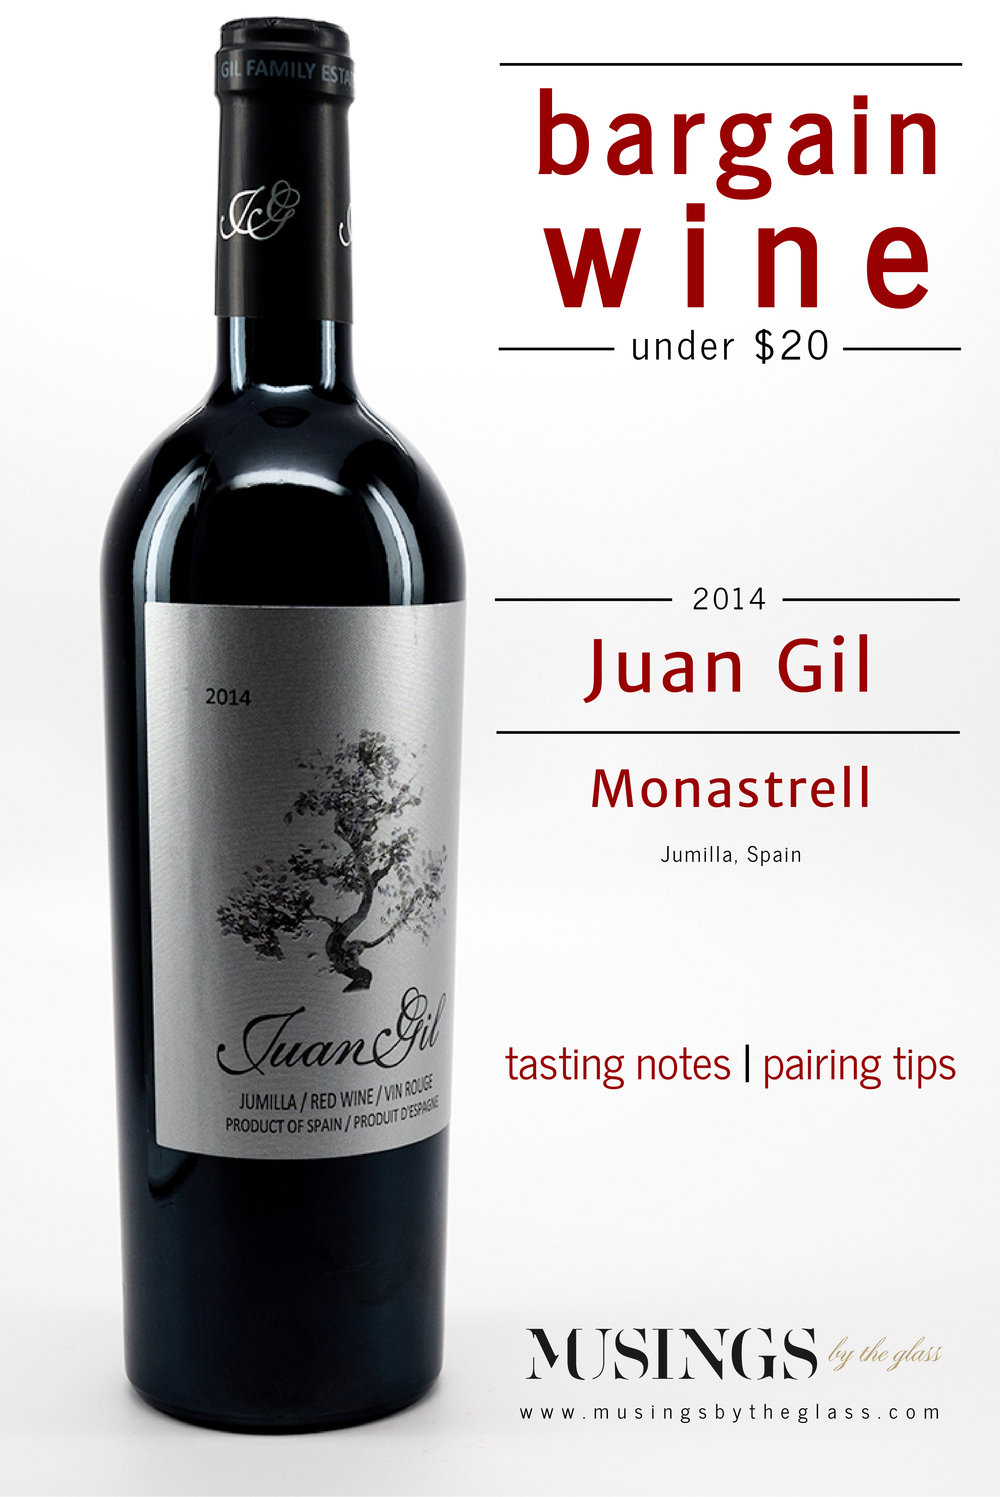 Musings by the Glass - Bargain Wines - 2014 Juan Gil Montrasell Jumilla Spain